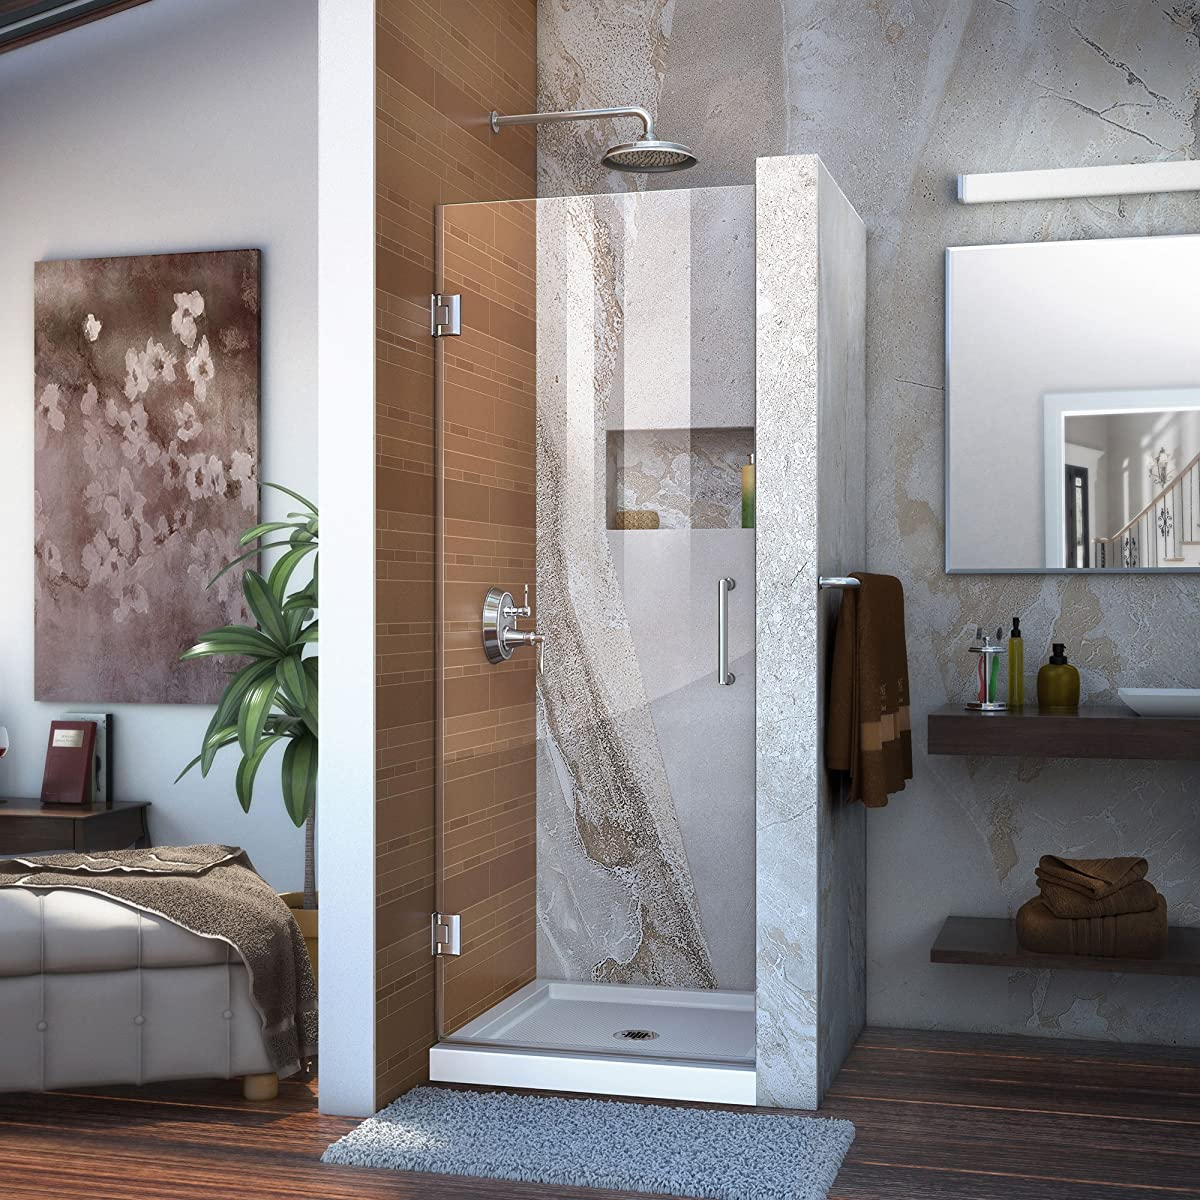 "DreamLine Unidoor 30 in. Width, Frameless Hinged Shower Door, 3/8"" Glass, Chrome Finish"